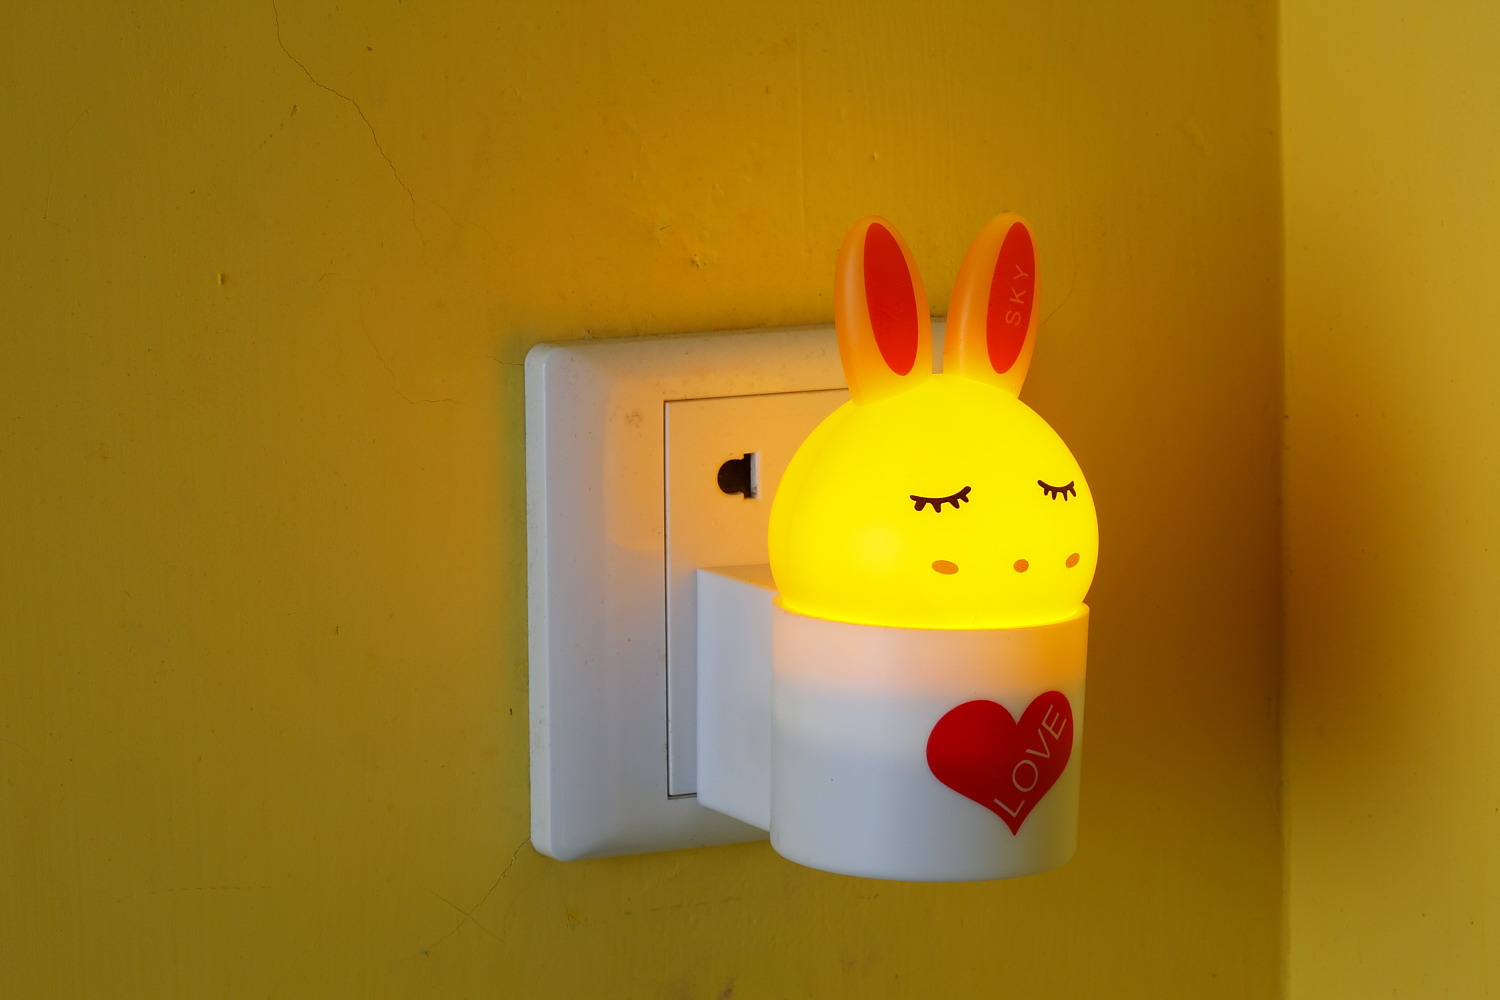 Intelligent-photoswitchable-rabbit-small-night-light-baby-bedroom-bedside-lamp-socket-lamp-lamps-led-sensor-light